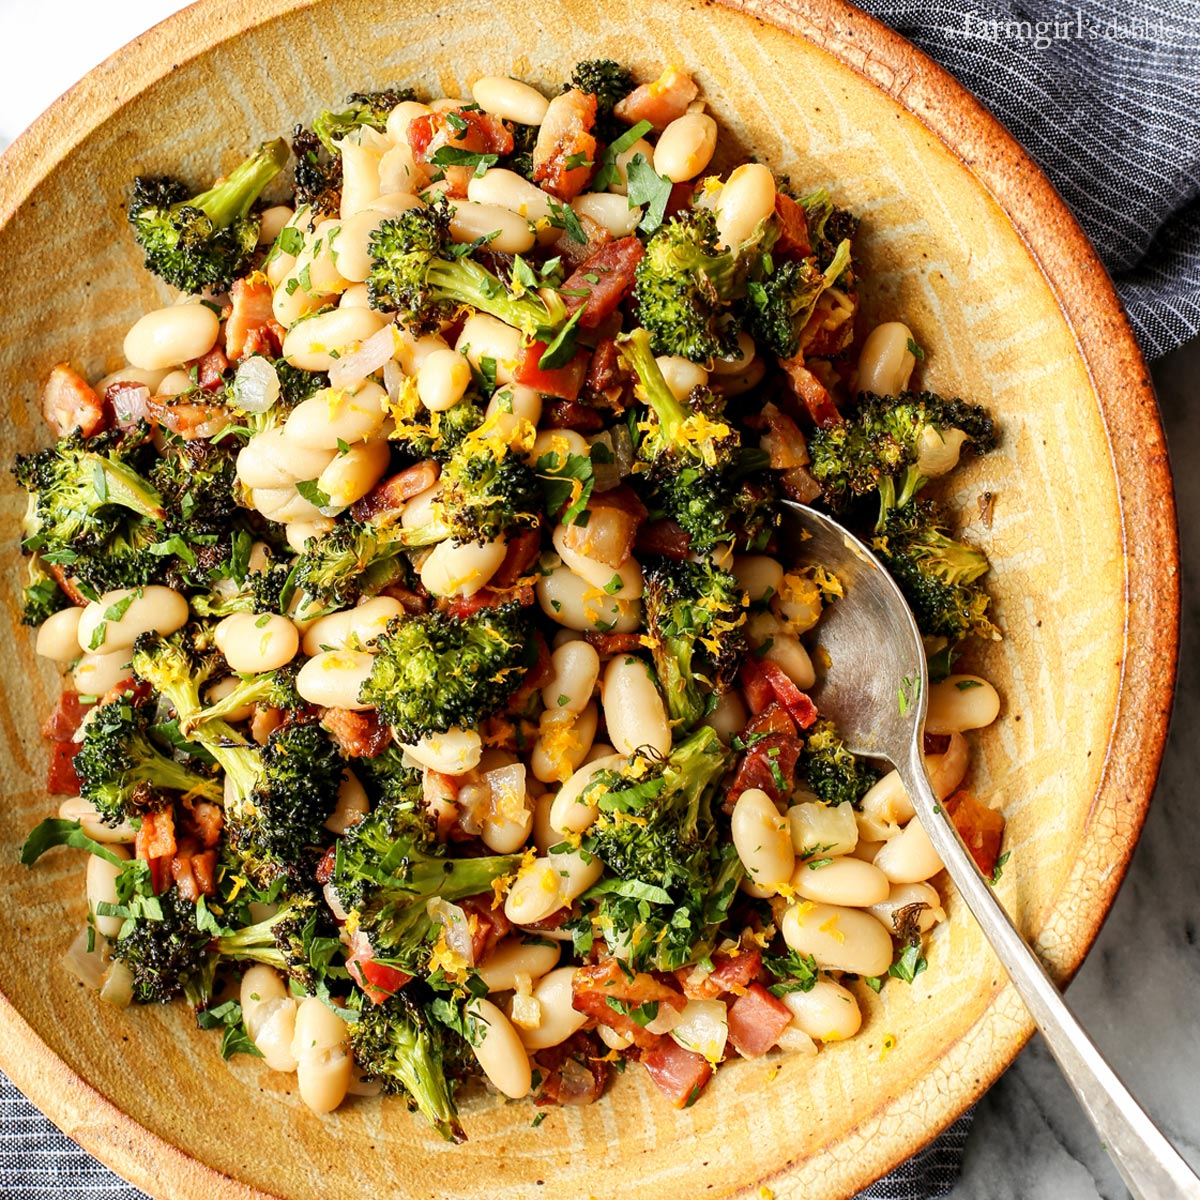 New! Lemon Broccoli with Beans and Bacon recipe + a day in the kitchen with @amanda_paa >>> https://t.co/lFAYeUmdF6 https://t.co/FQokfmHLpC